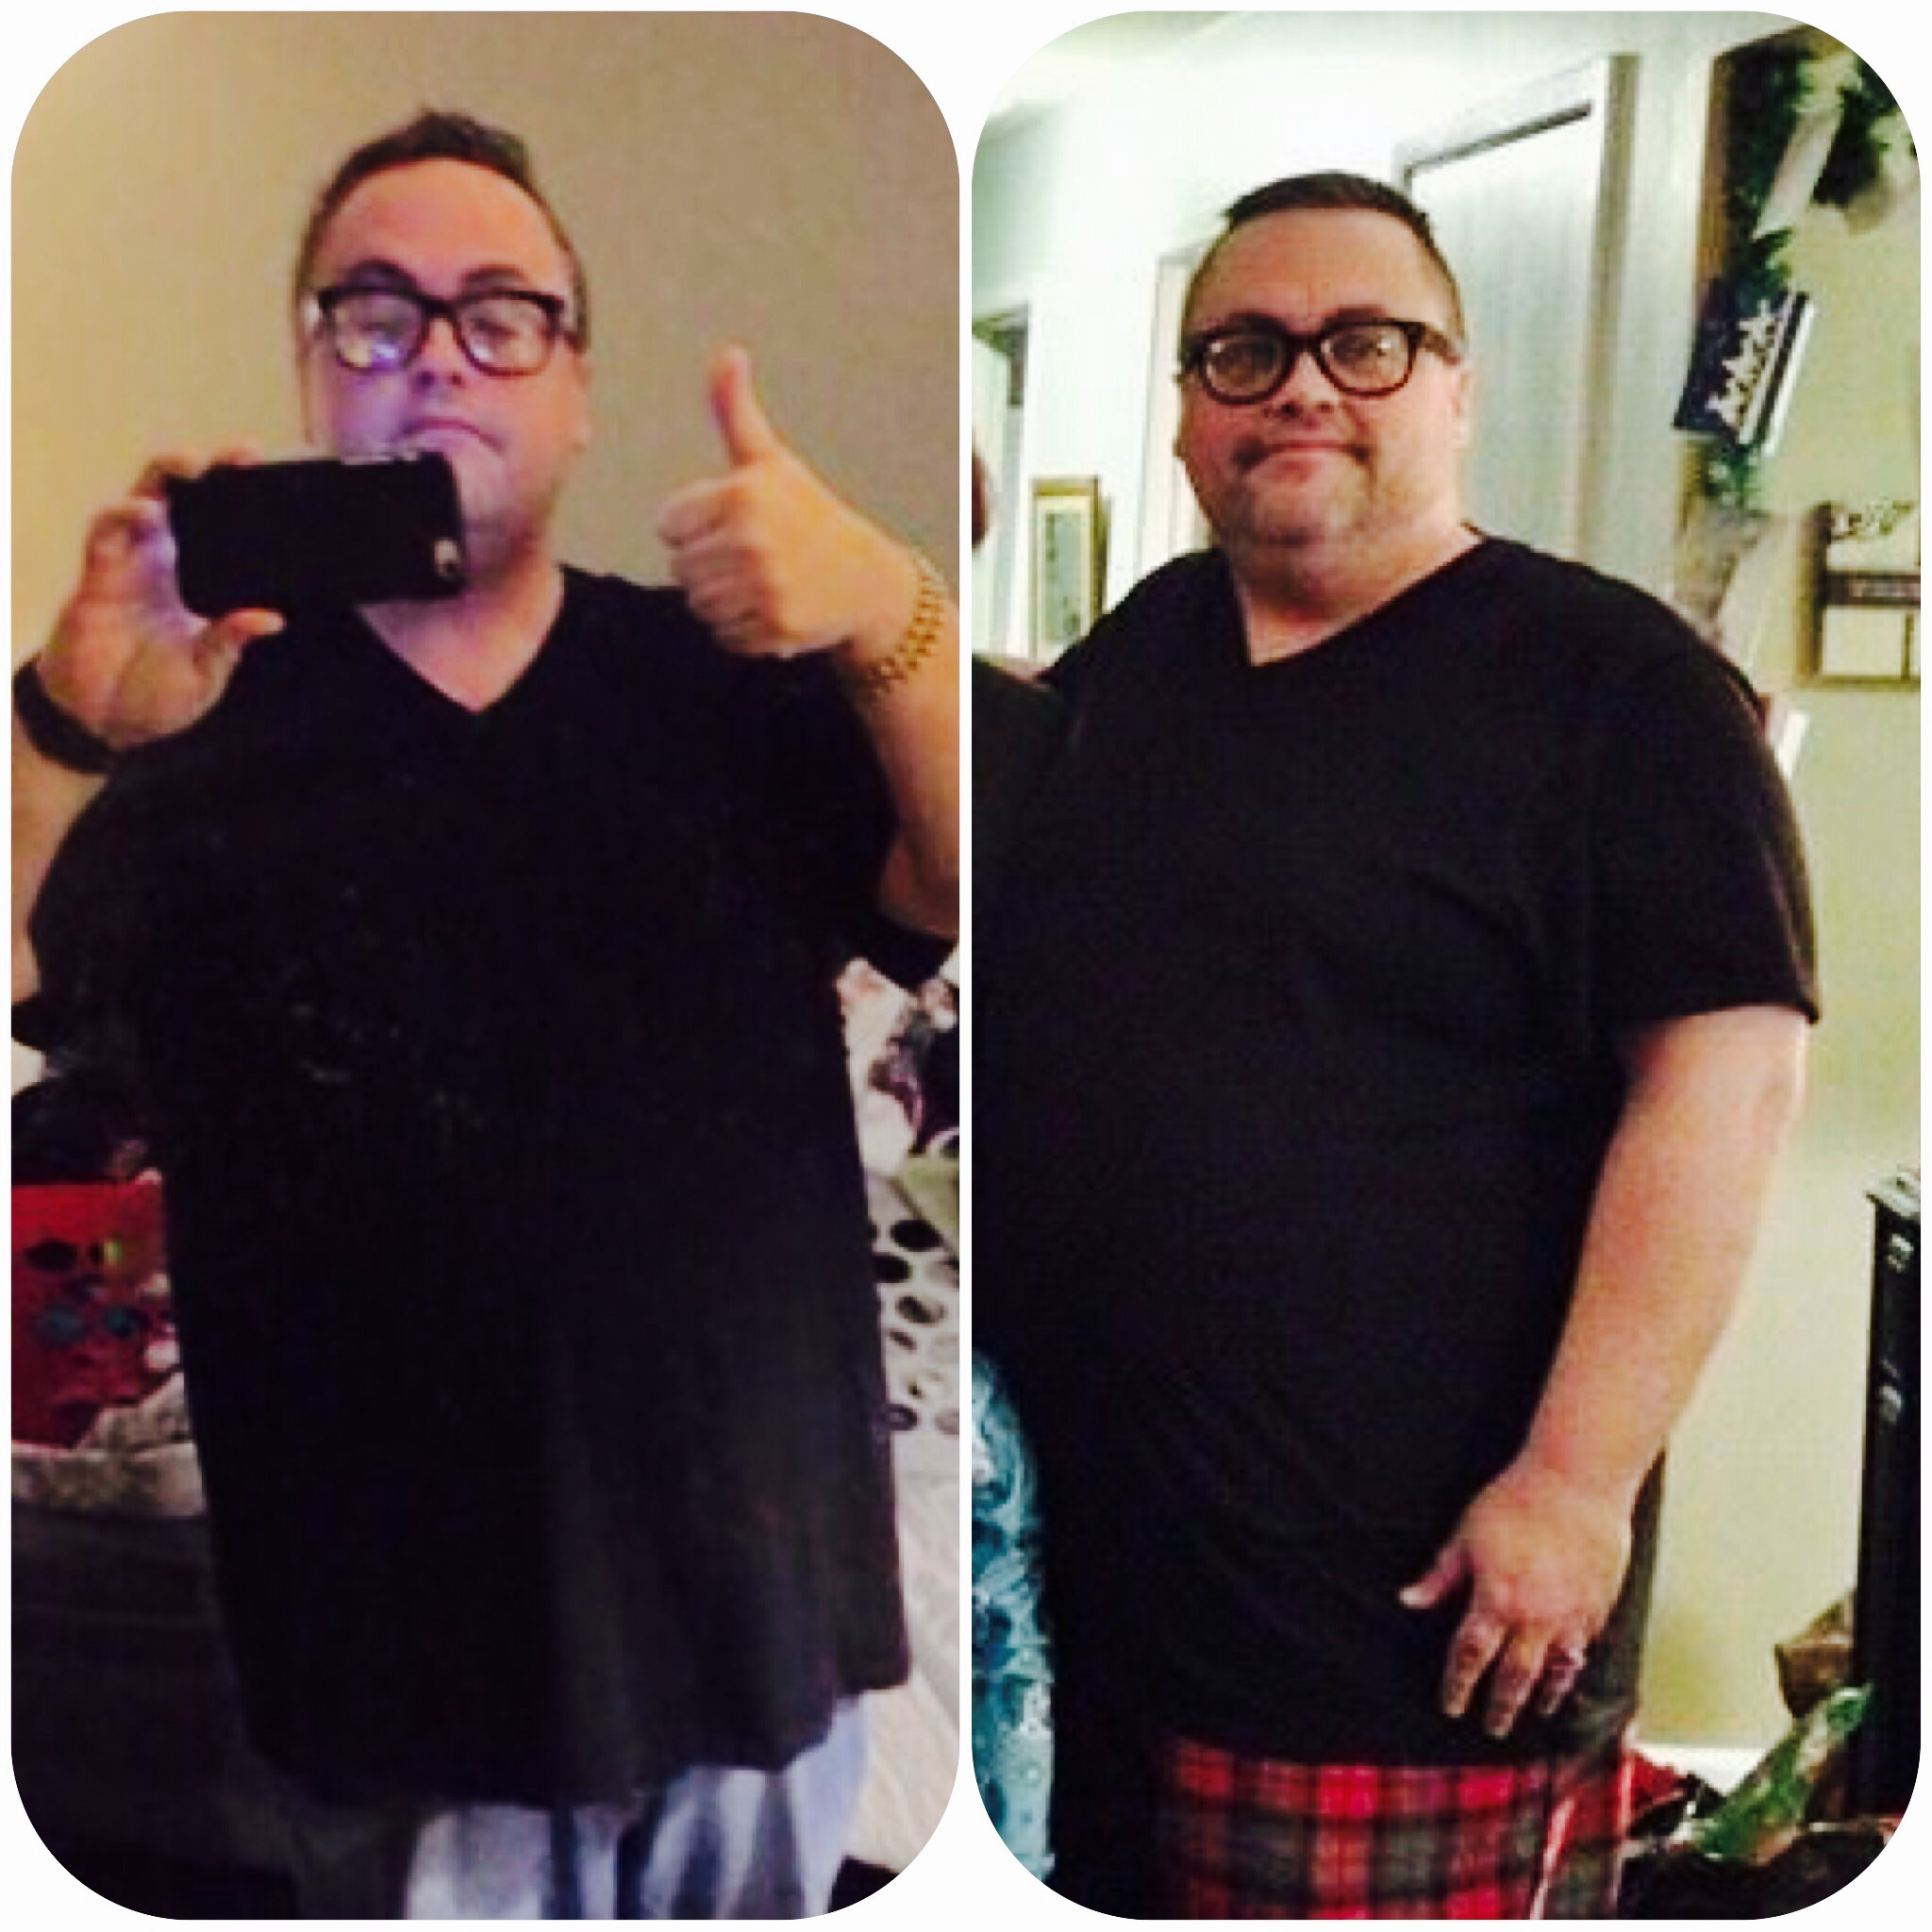 That's me on the right just a year ago at Xmas...me now almost a year later wearing the same shirt no less